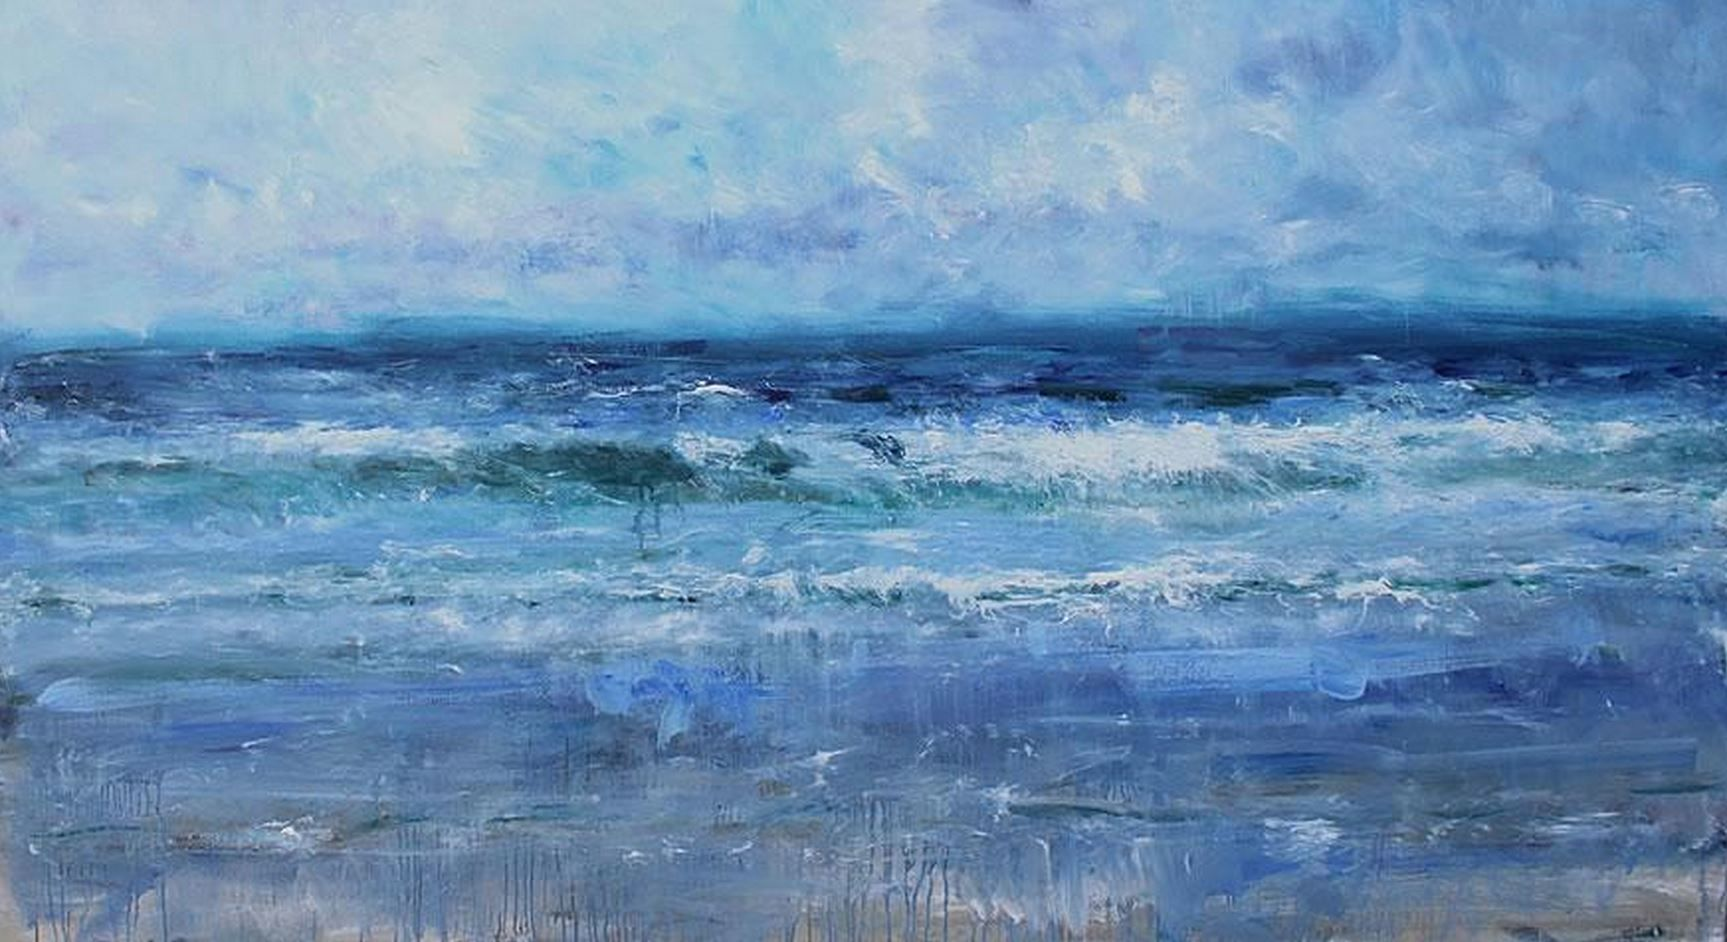 High Tide,Jonathan Shearer,Peinture contemporaine